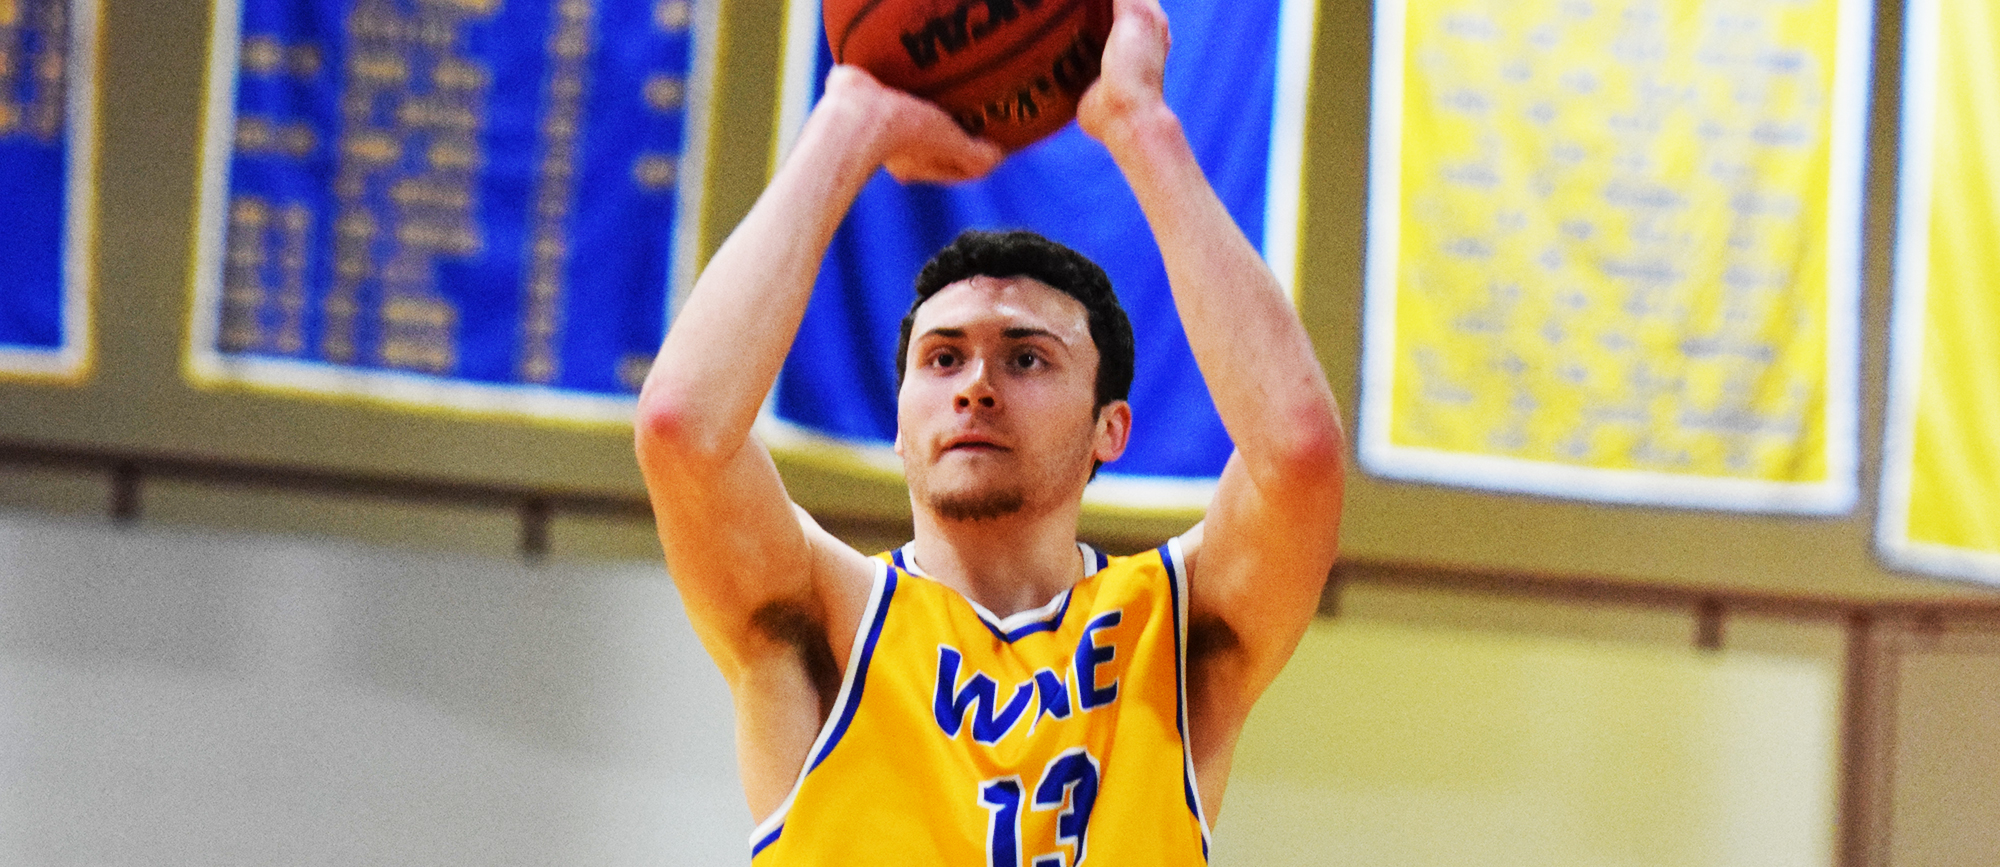 Freshman Alex Sikorski scored 16 points off the bench in Western New England's 91-79 win over Dean on Thursday. (Photo by Rachael Margossian)